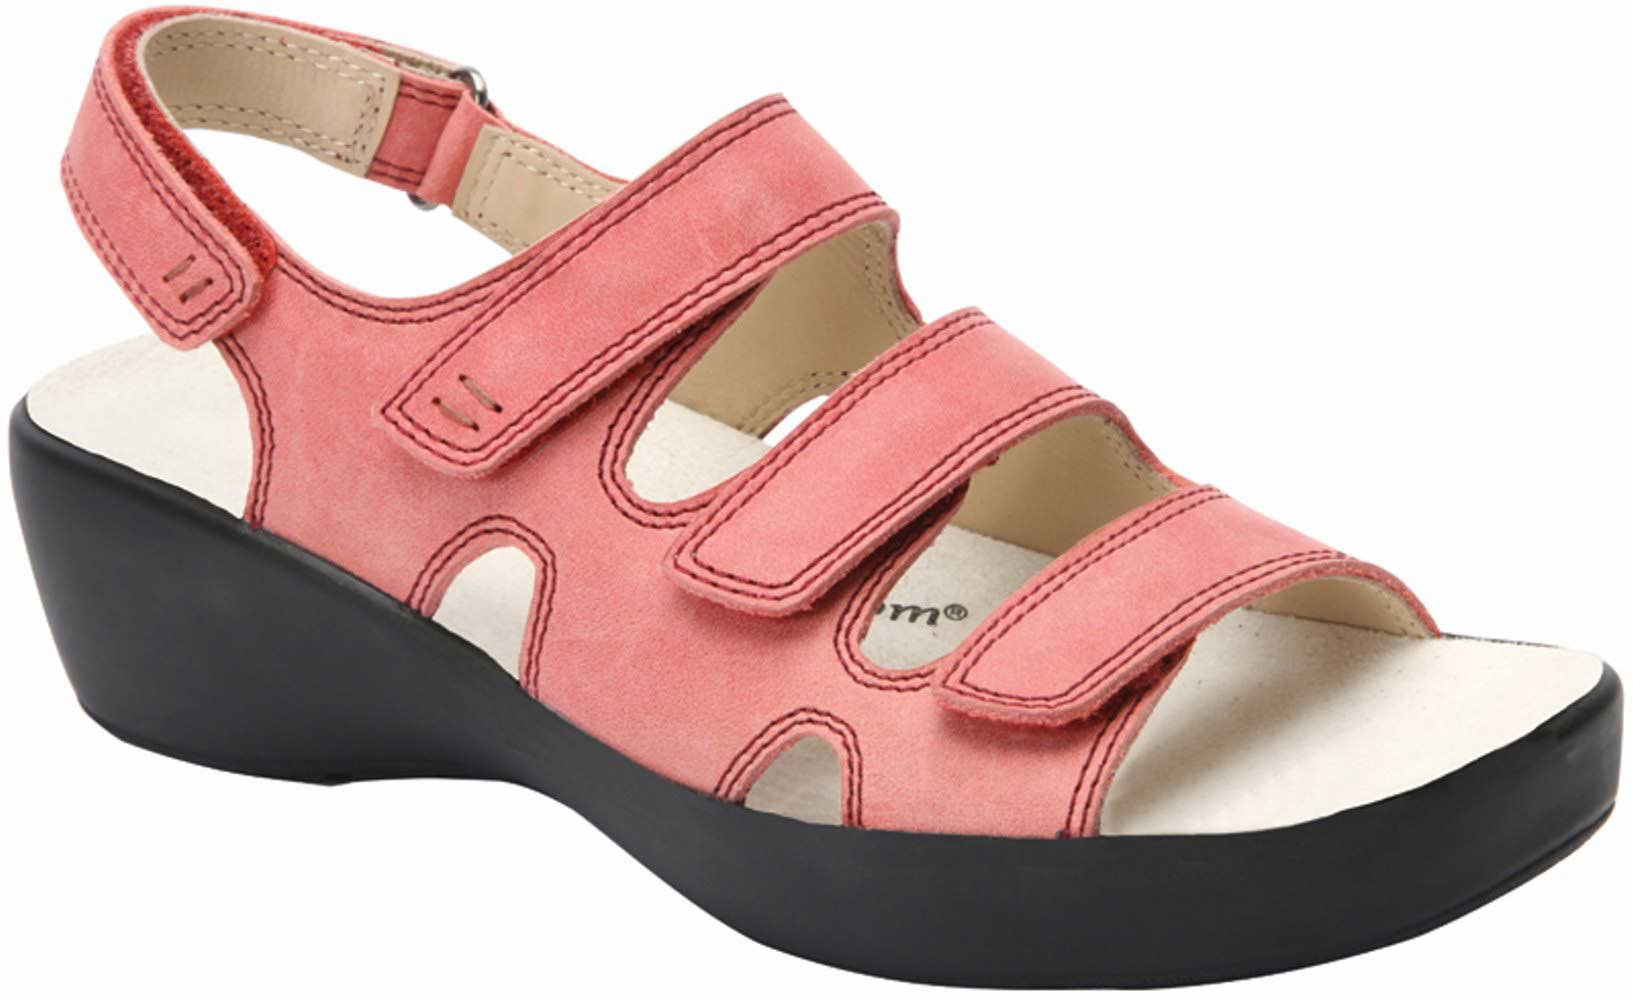 Women's sandals with removable insoles - The Drew Shoe Alma Alma Barefoot Freedom By Drew Sandals Combine An Updated Modern Look With A Hard To Find Removable Insole And A Removable Ultron